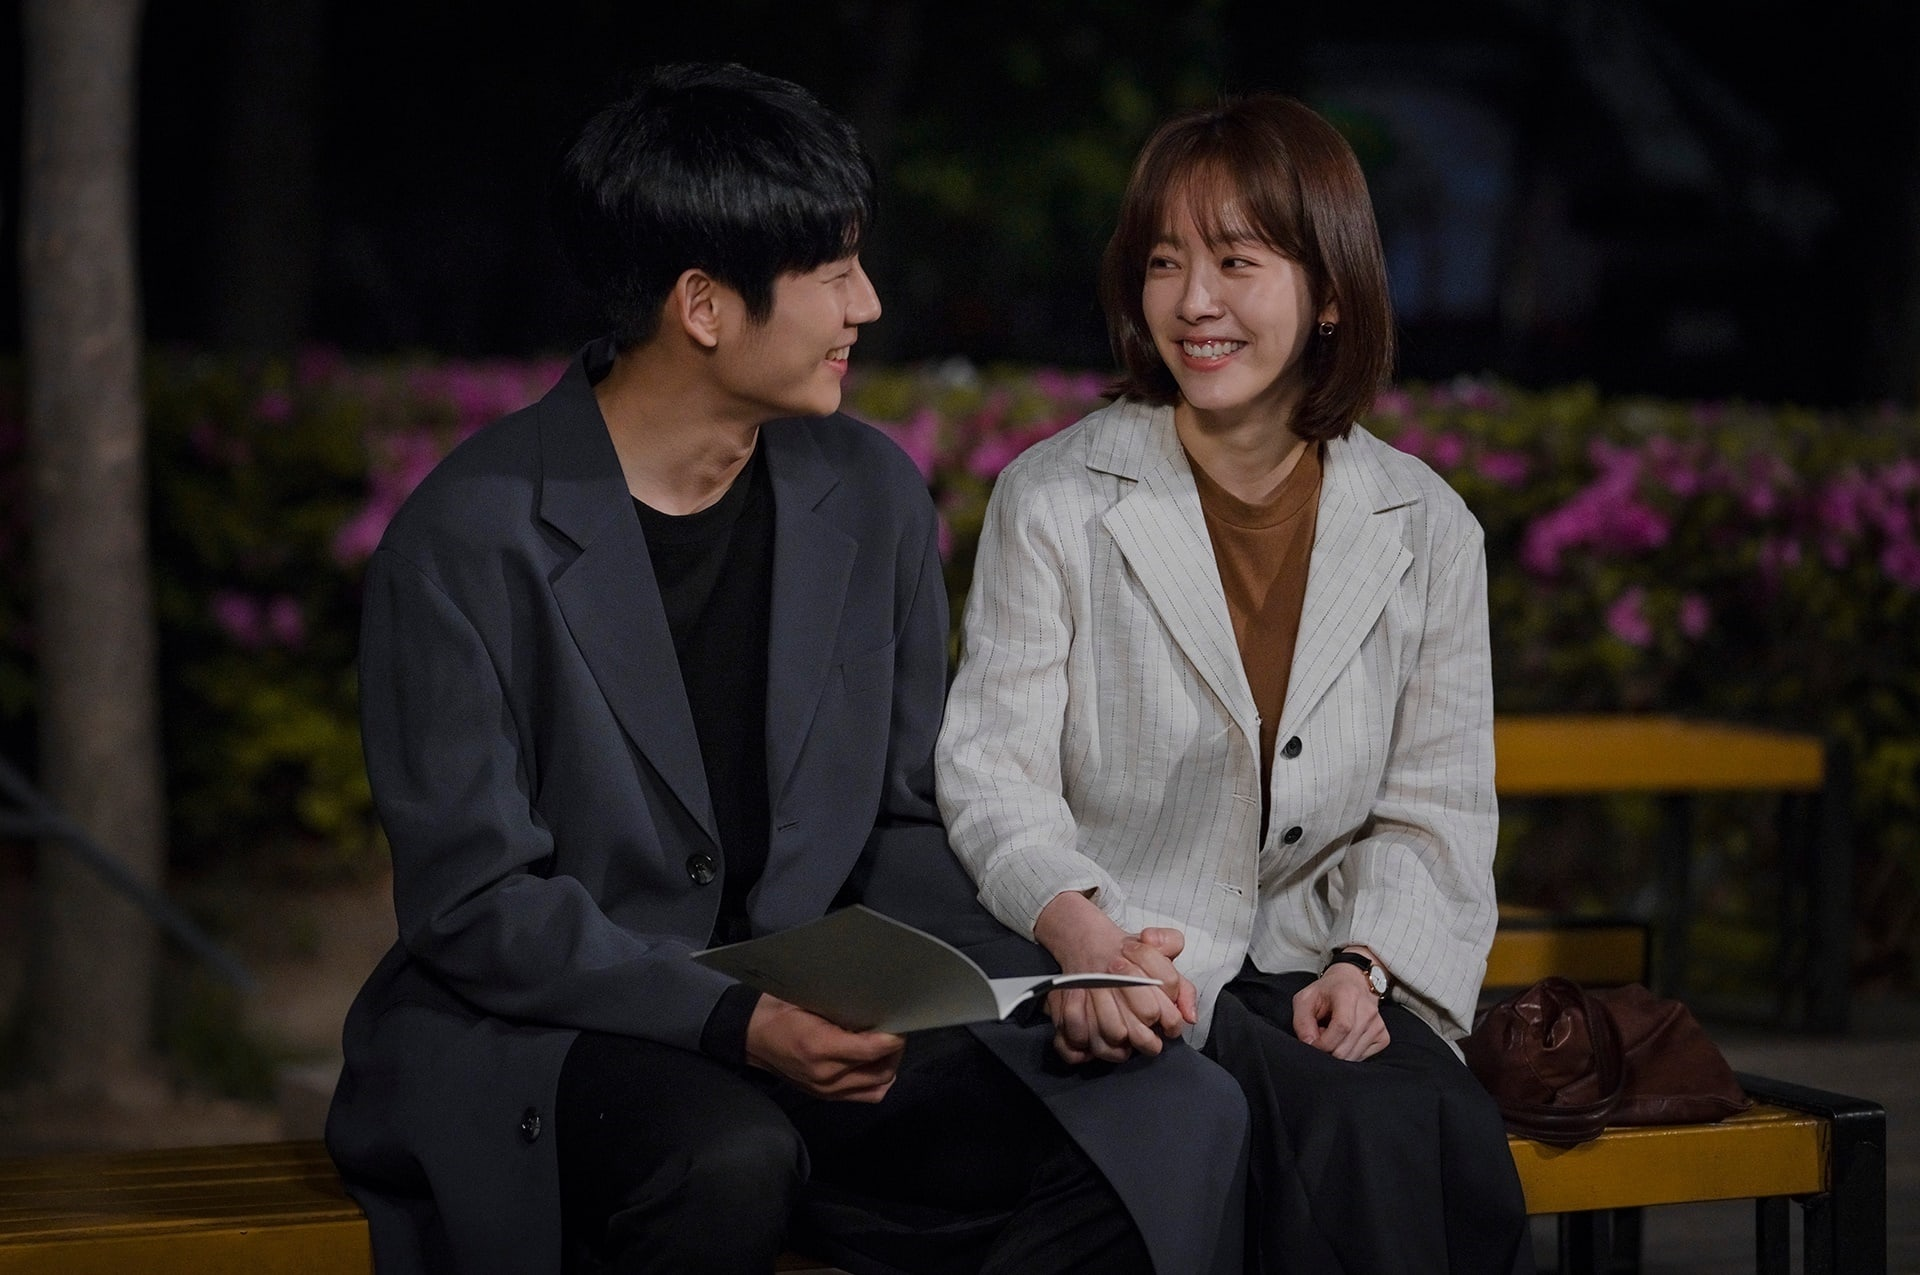 """Jung Hae In And Han Ji Min Share Sweet Moment In Behind-The-Scenes Stills  Of """"One Spring Night"""" Kiss – KDrama Fandom"""